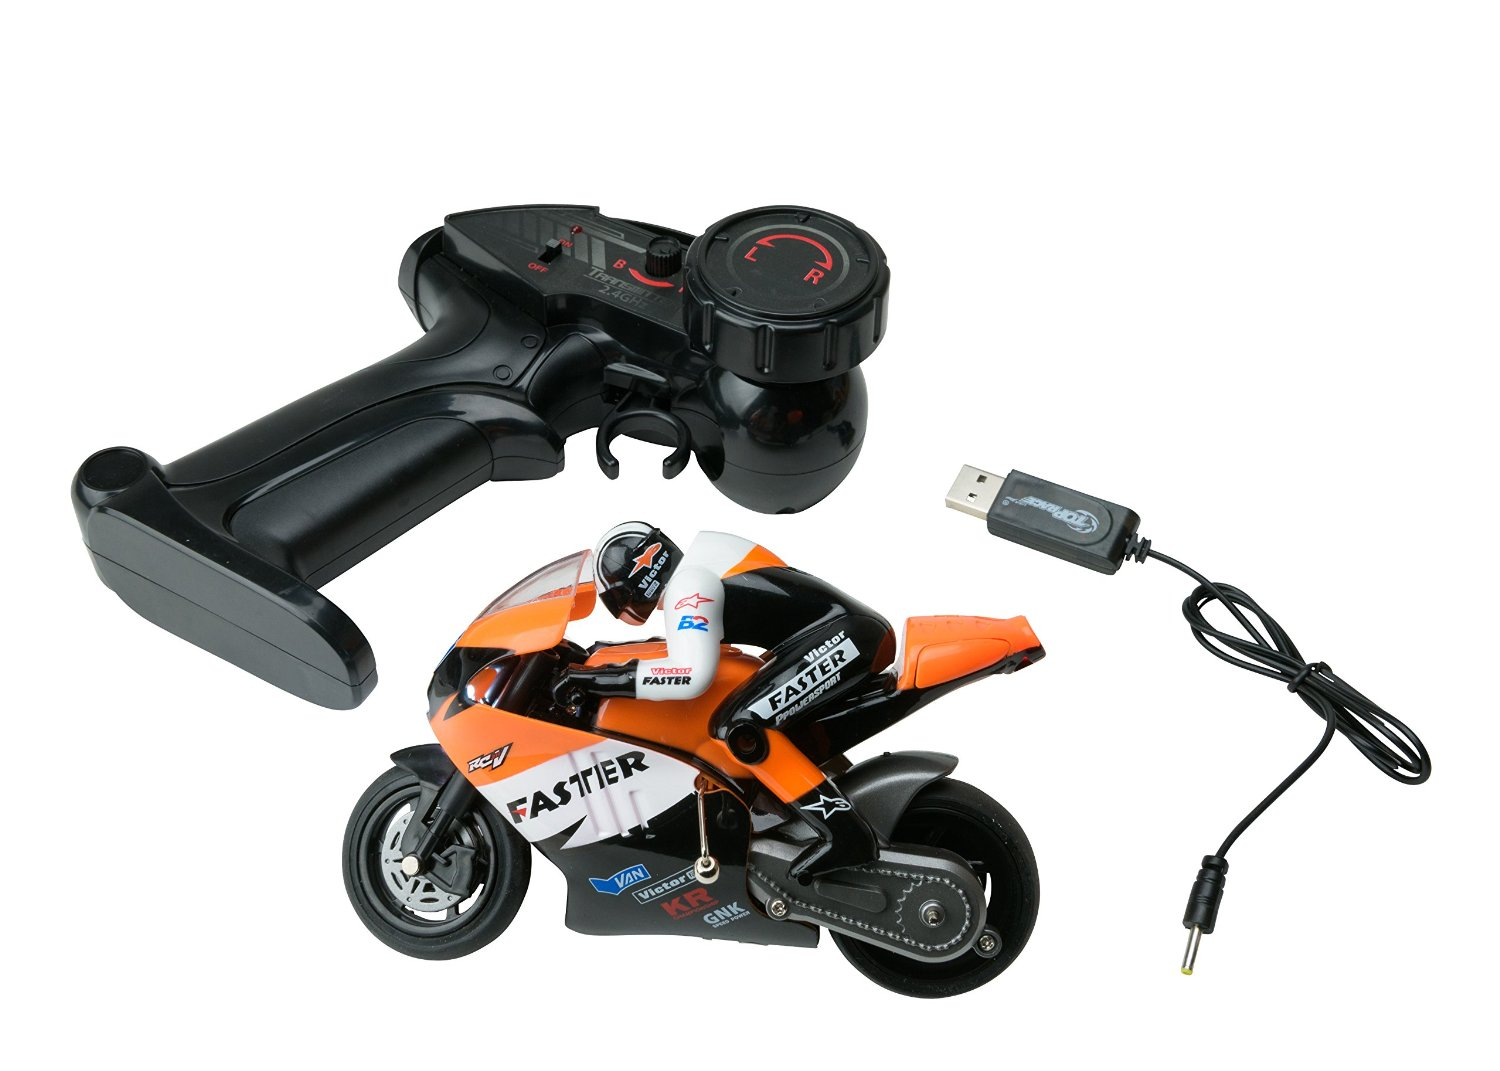 Siêu xe motor đua điều khiển từ xa Channel RC Remote Control Motorcycle Goes on 2 Wheels with Built in Gyroscope